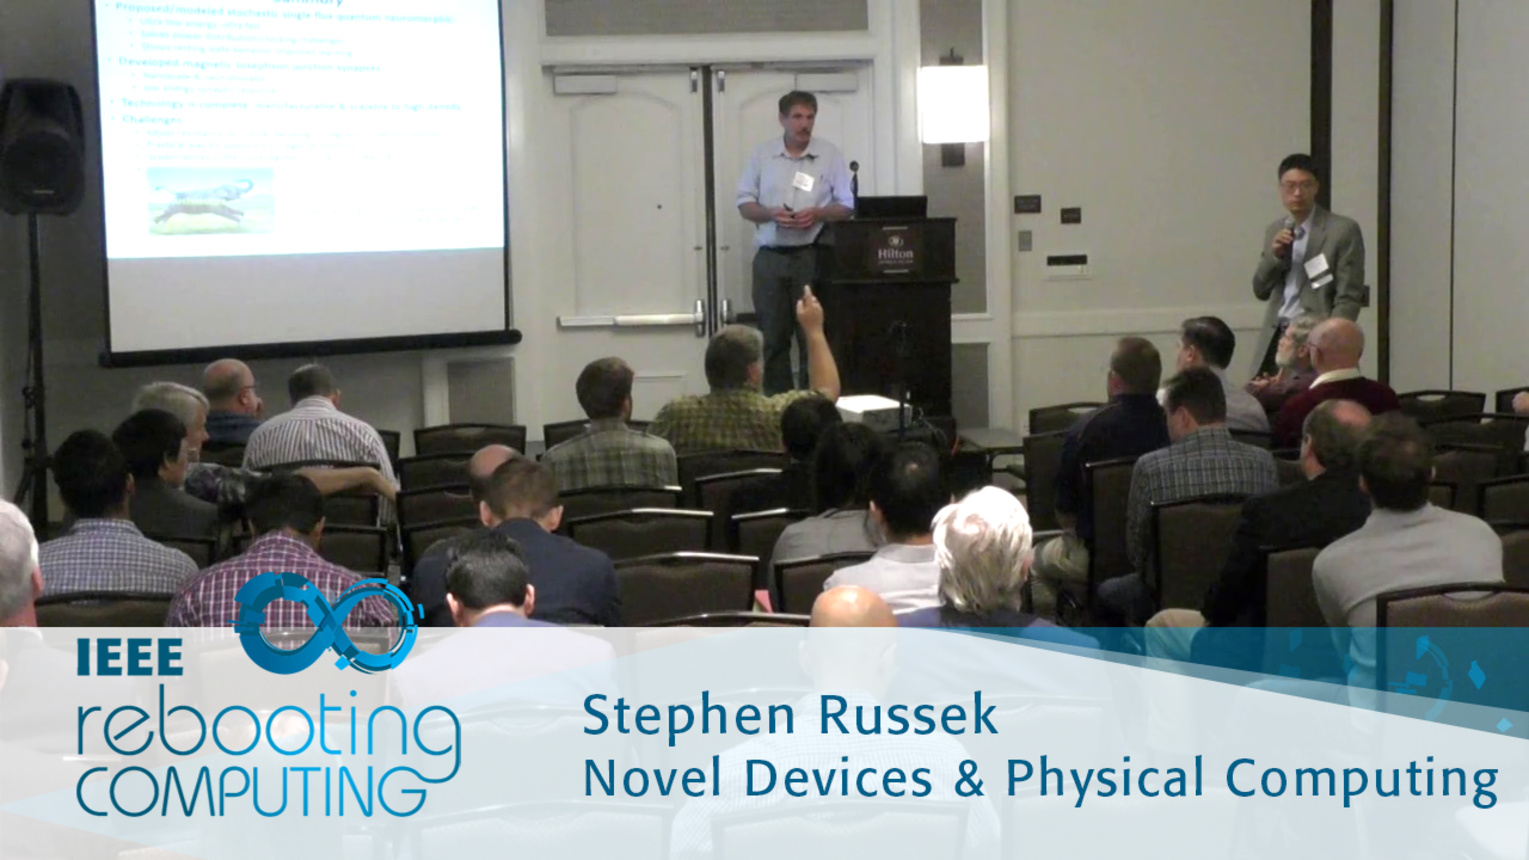 Stochastic Single Flux Quantum Neuromorphic Computing using Magnetically Tunable Josephson Junctions - Stephen Russek: 2016 International Conference on Rebooting Computing